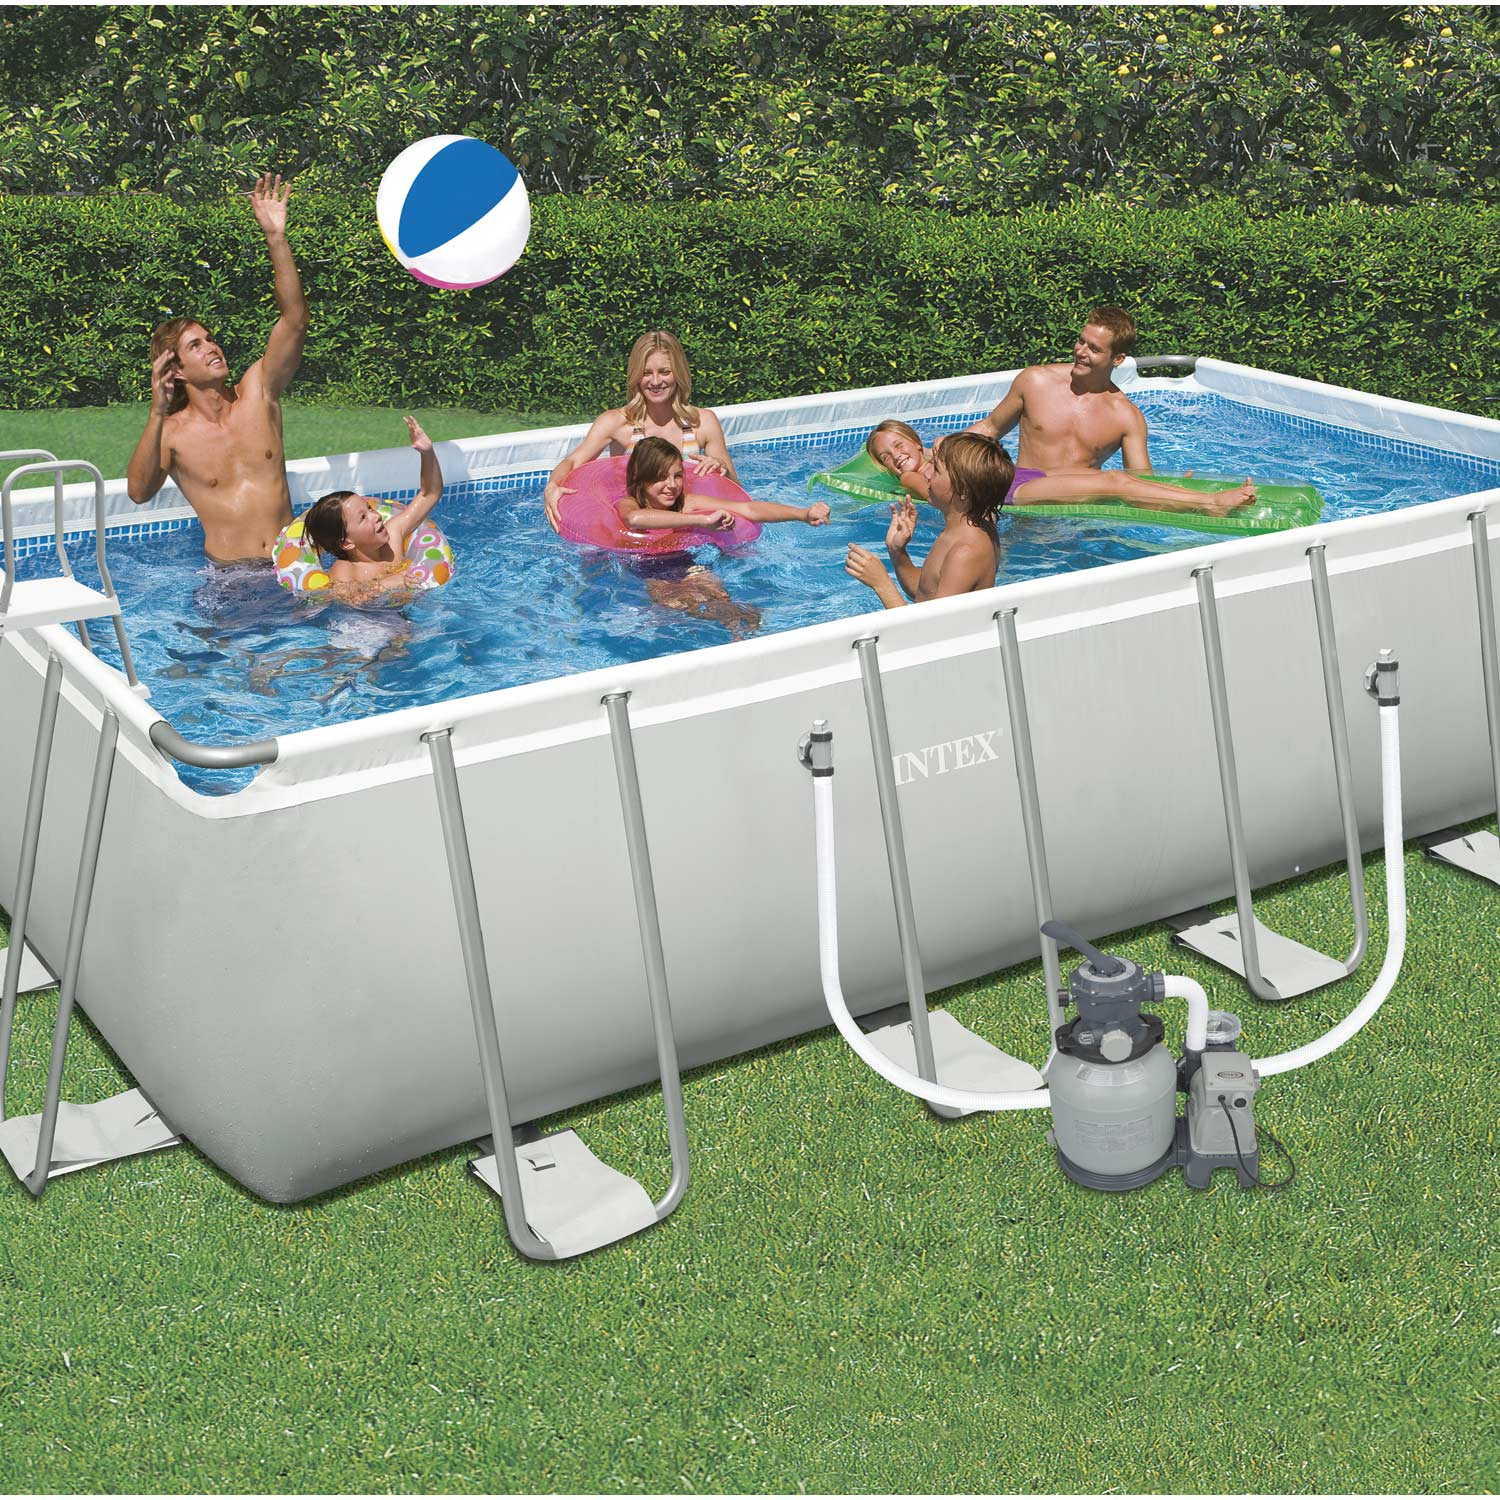 Piscine hors sol autoportante tubulaire ultra silver intex for Piscine coque polyester hors sol